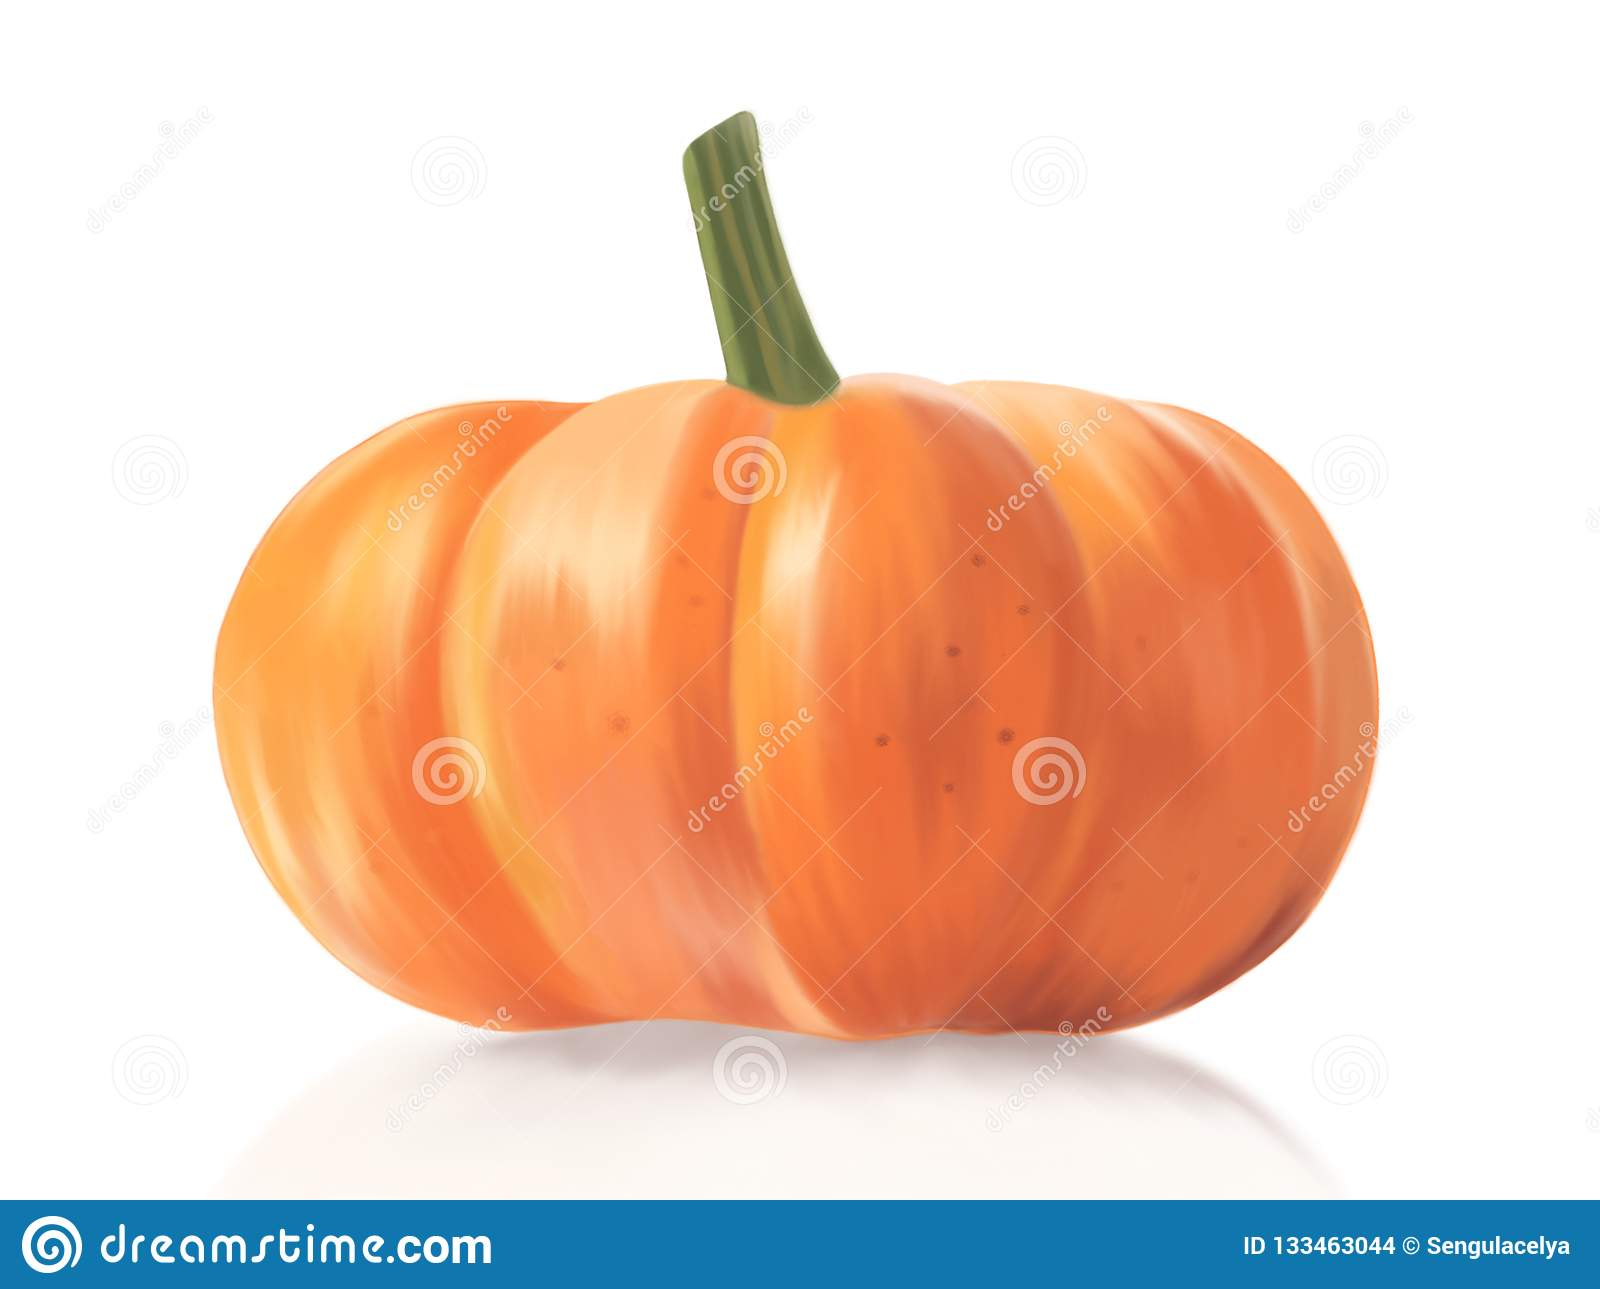 Pumpkin Illustration art